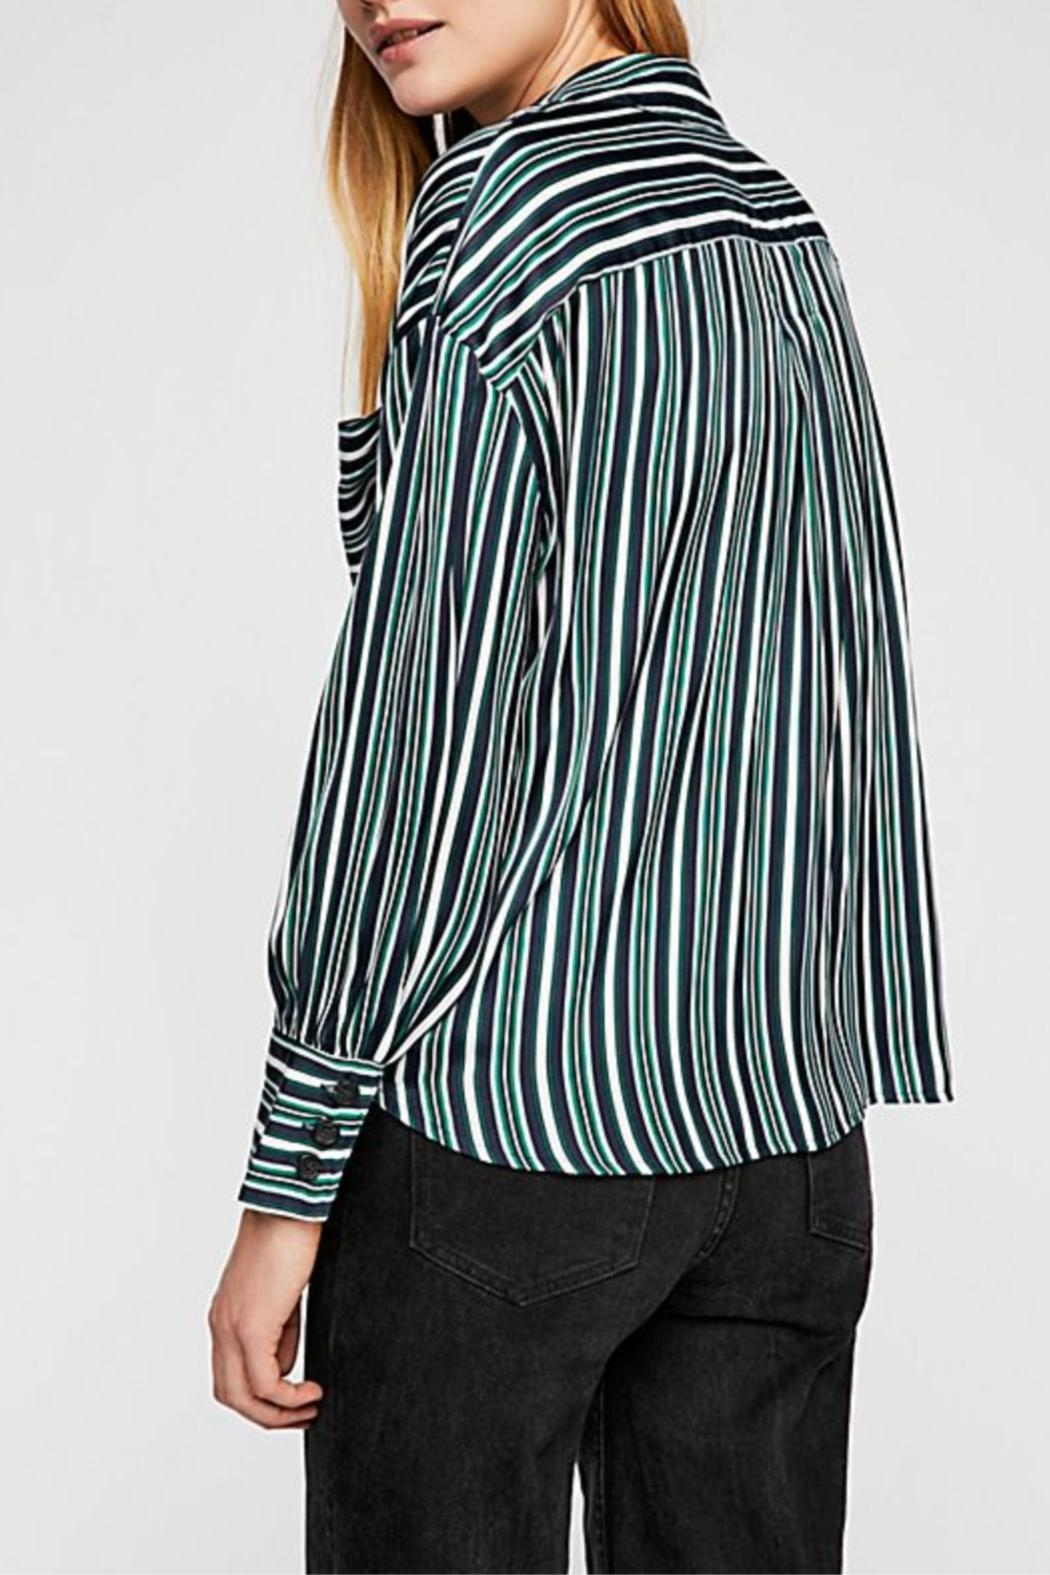 Free People Striped Shirt - Front Full Image